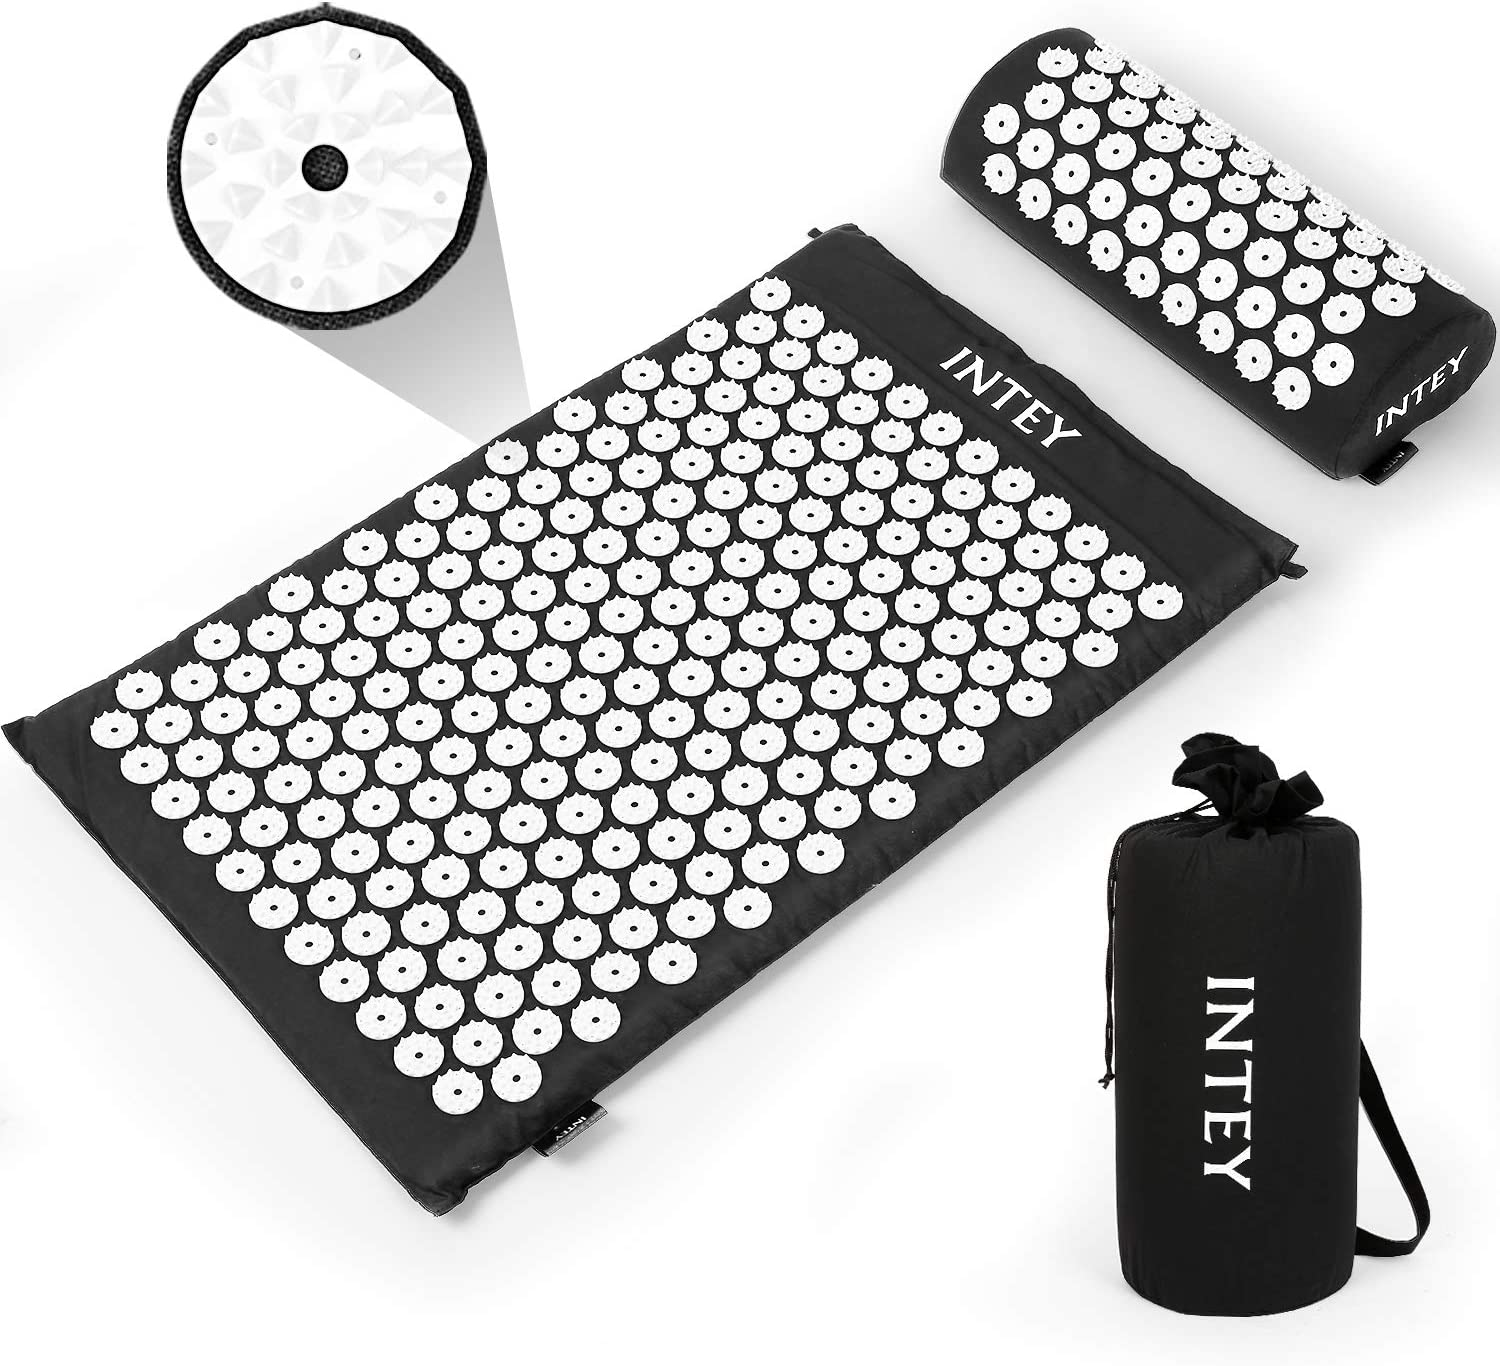 INTEY Wellness Therapy Acupressure Mat Set, Relief Muscle Pain and Stress, Acupuncture Mat and Pillow Cushion for Back, Neck & Feet Massage with Carry Bag (Black)